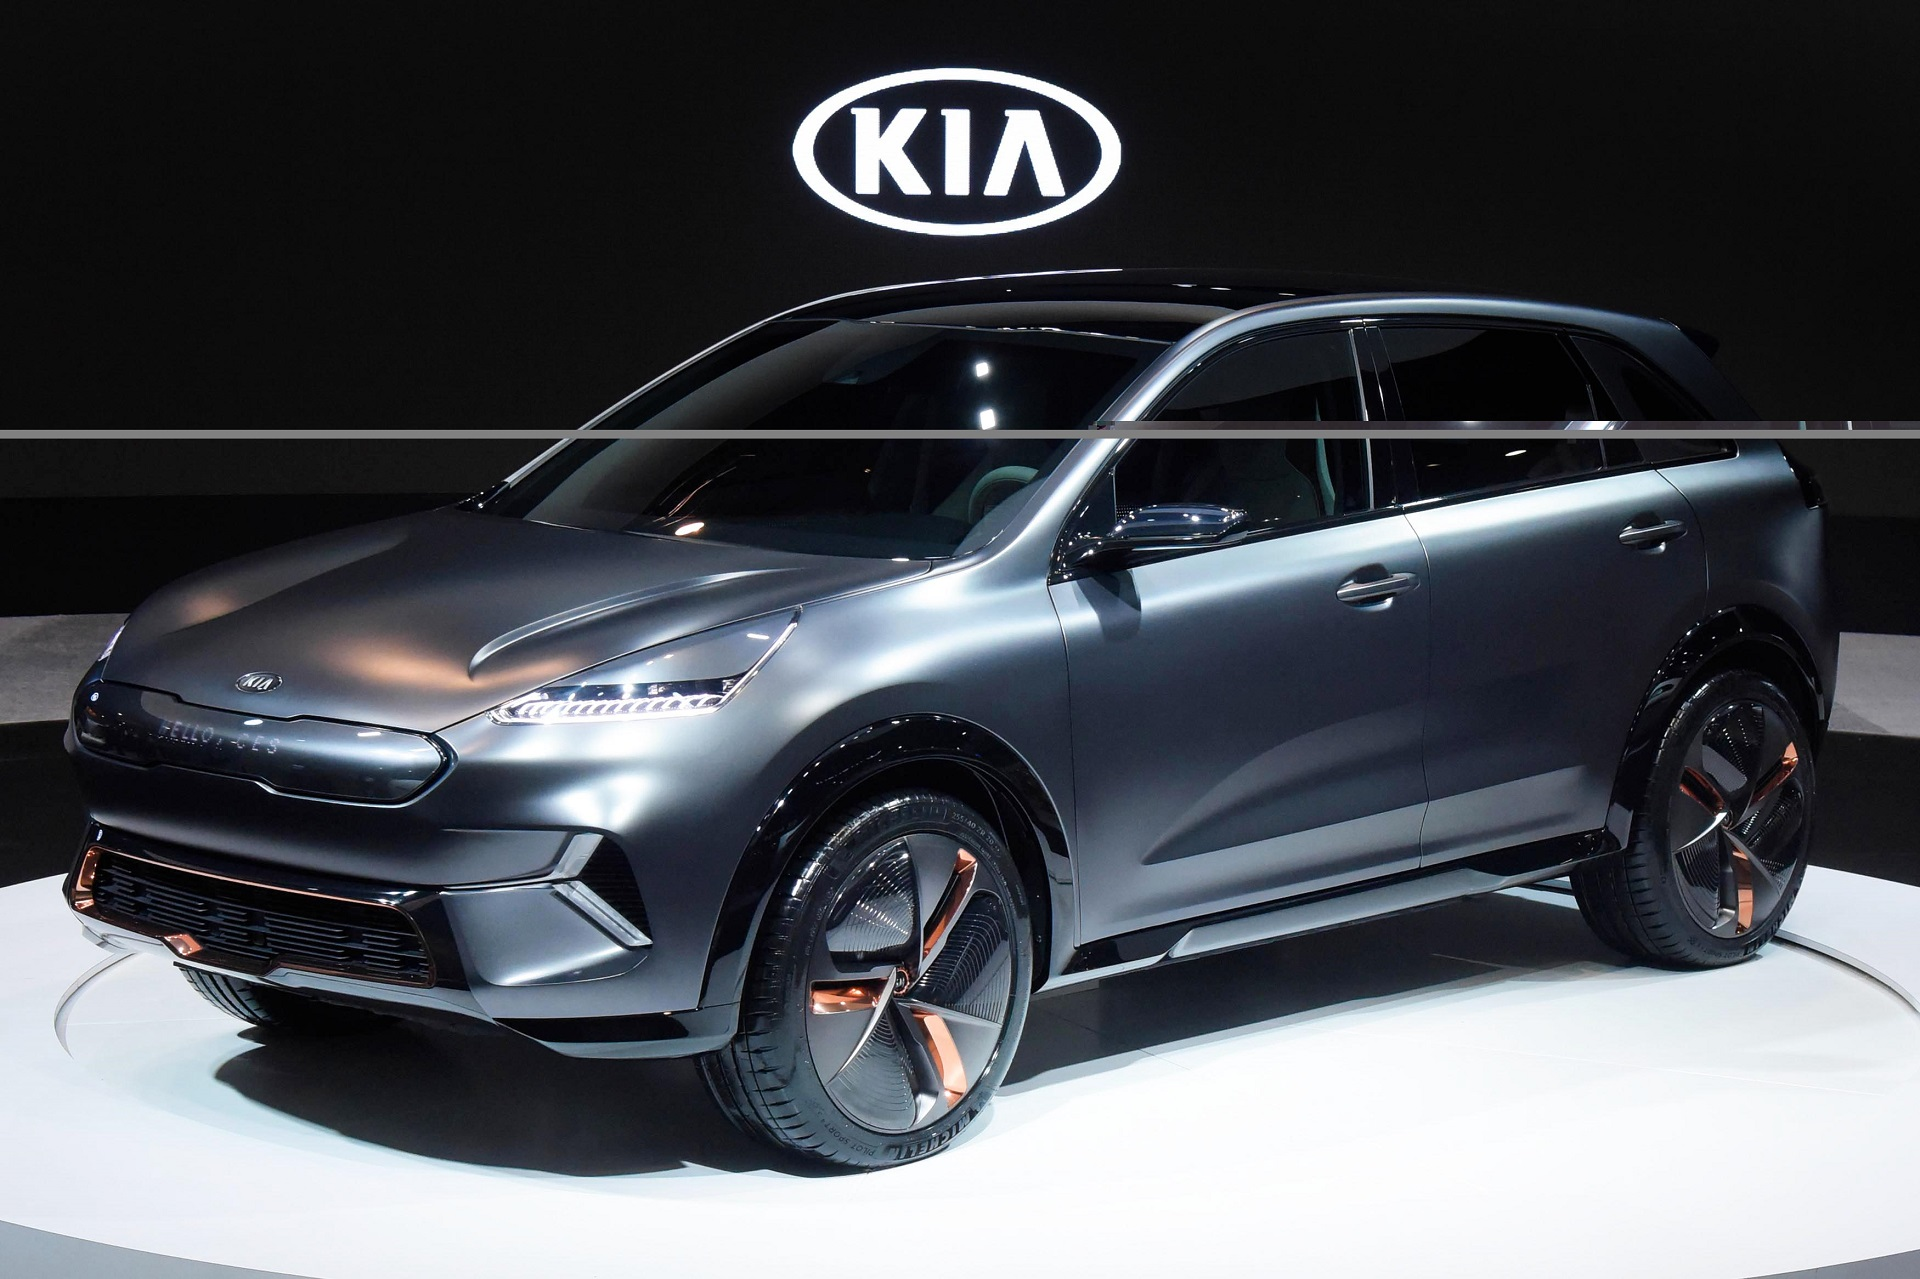 kia niro ev concept at ces 238 miles of range from 64 kwh battery. Black Bedroom Furniture Sets. Home Design Ideas